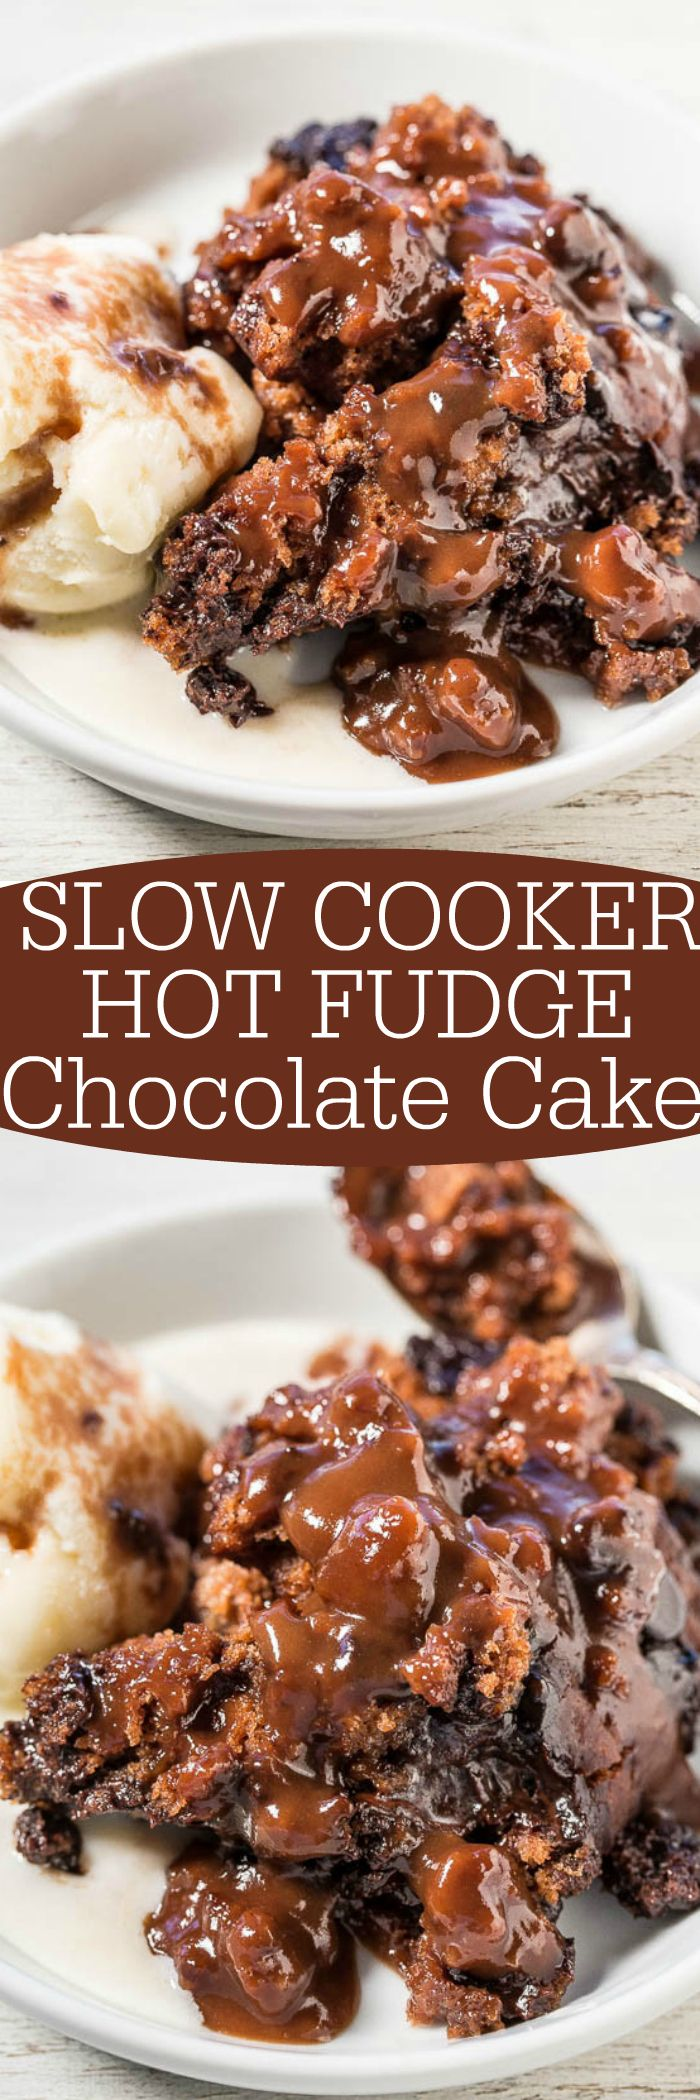 25+ best Slow cooker chocolate cake ideas on Pinterest | Slow ...